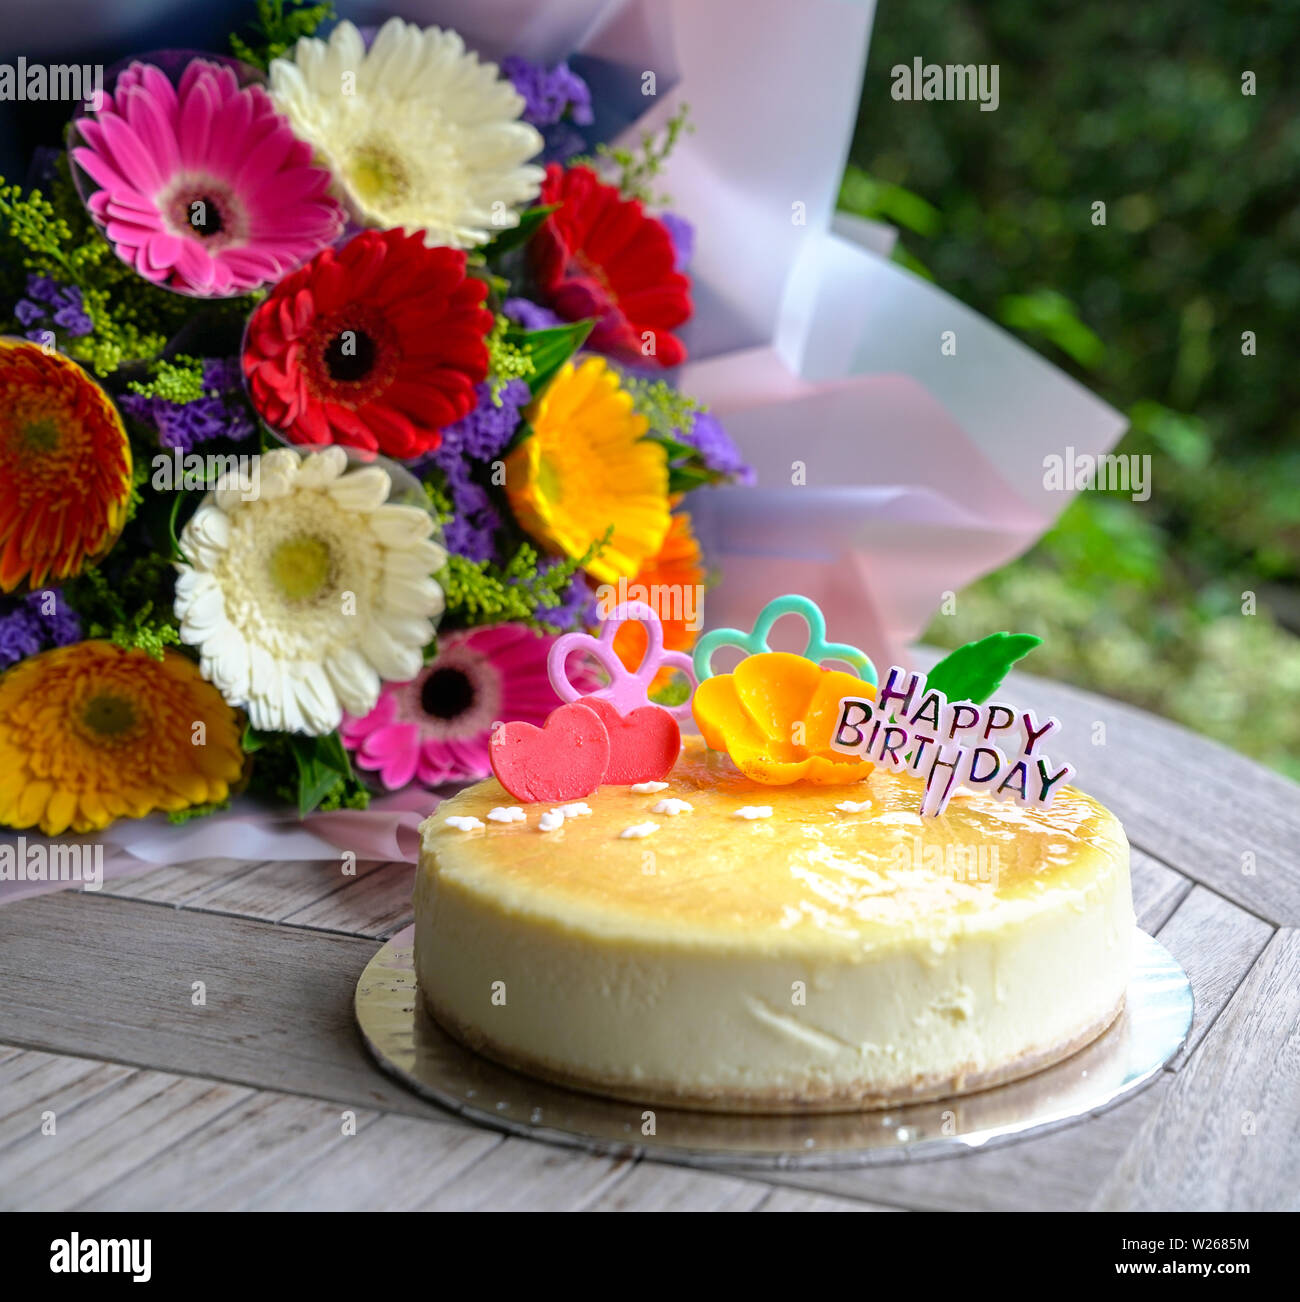 Bouquet Of Gerbera Daisy Flowers And Cheese Cake As Birthday Present Or Gift Stock Photo Alamy